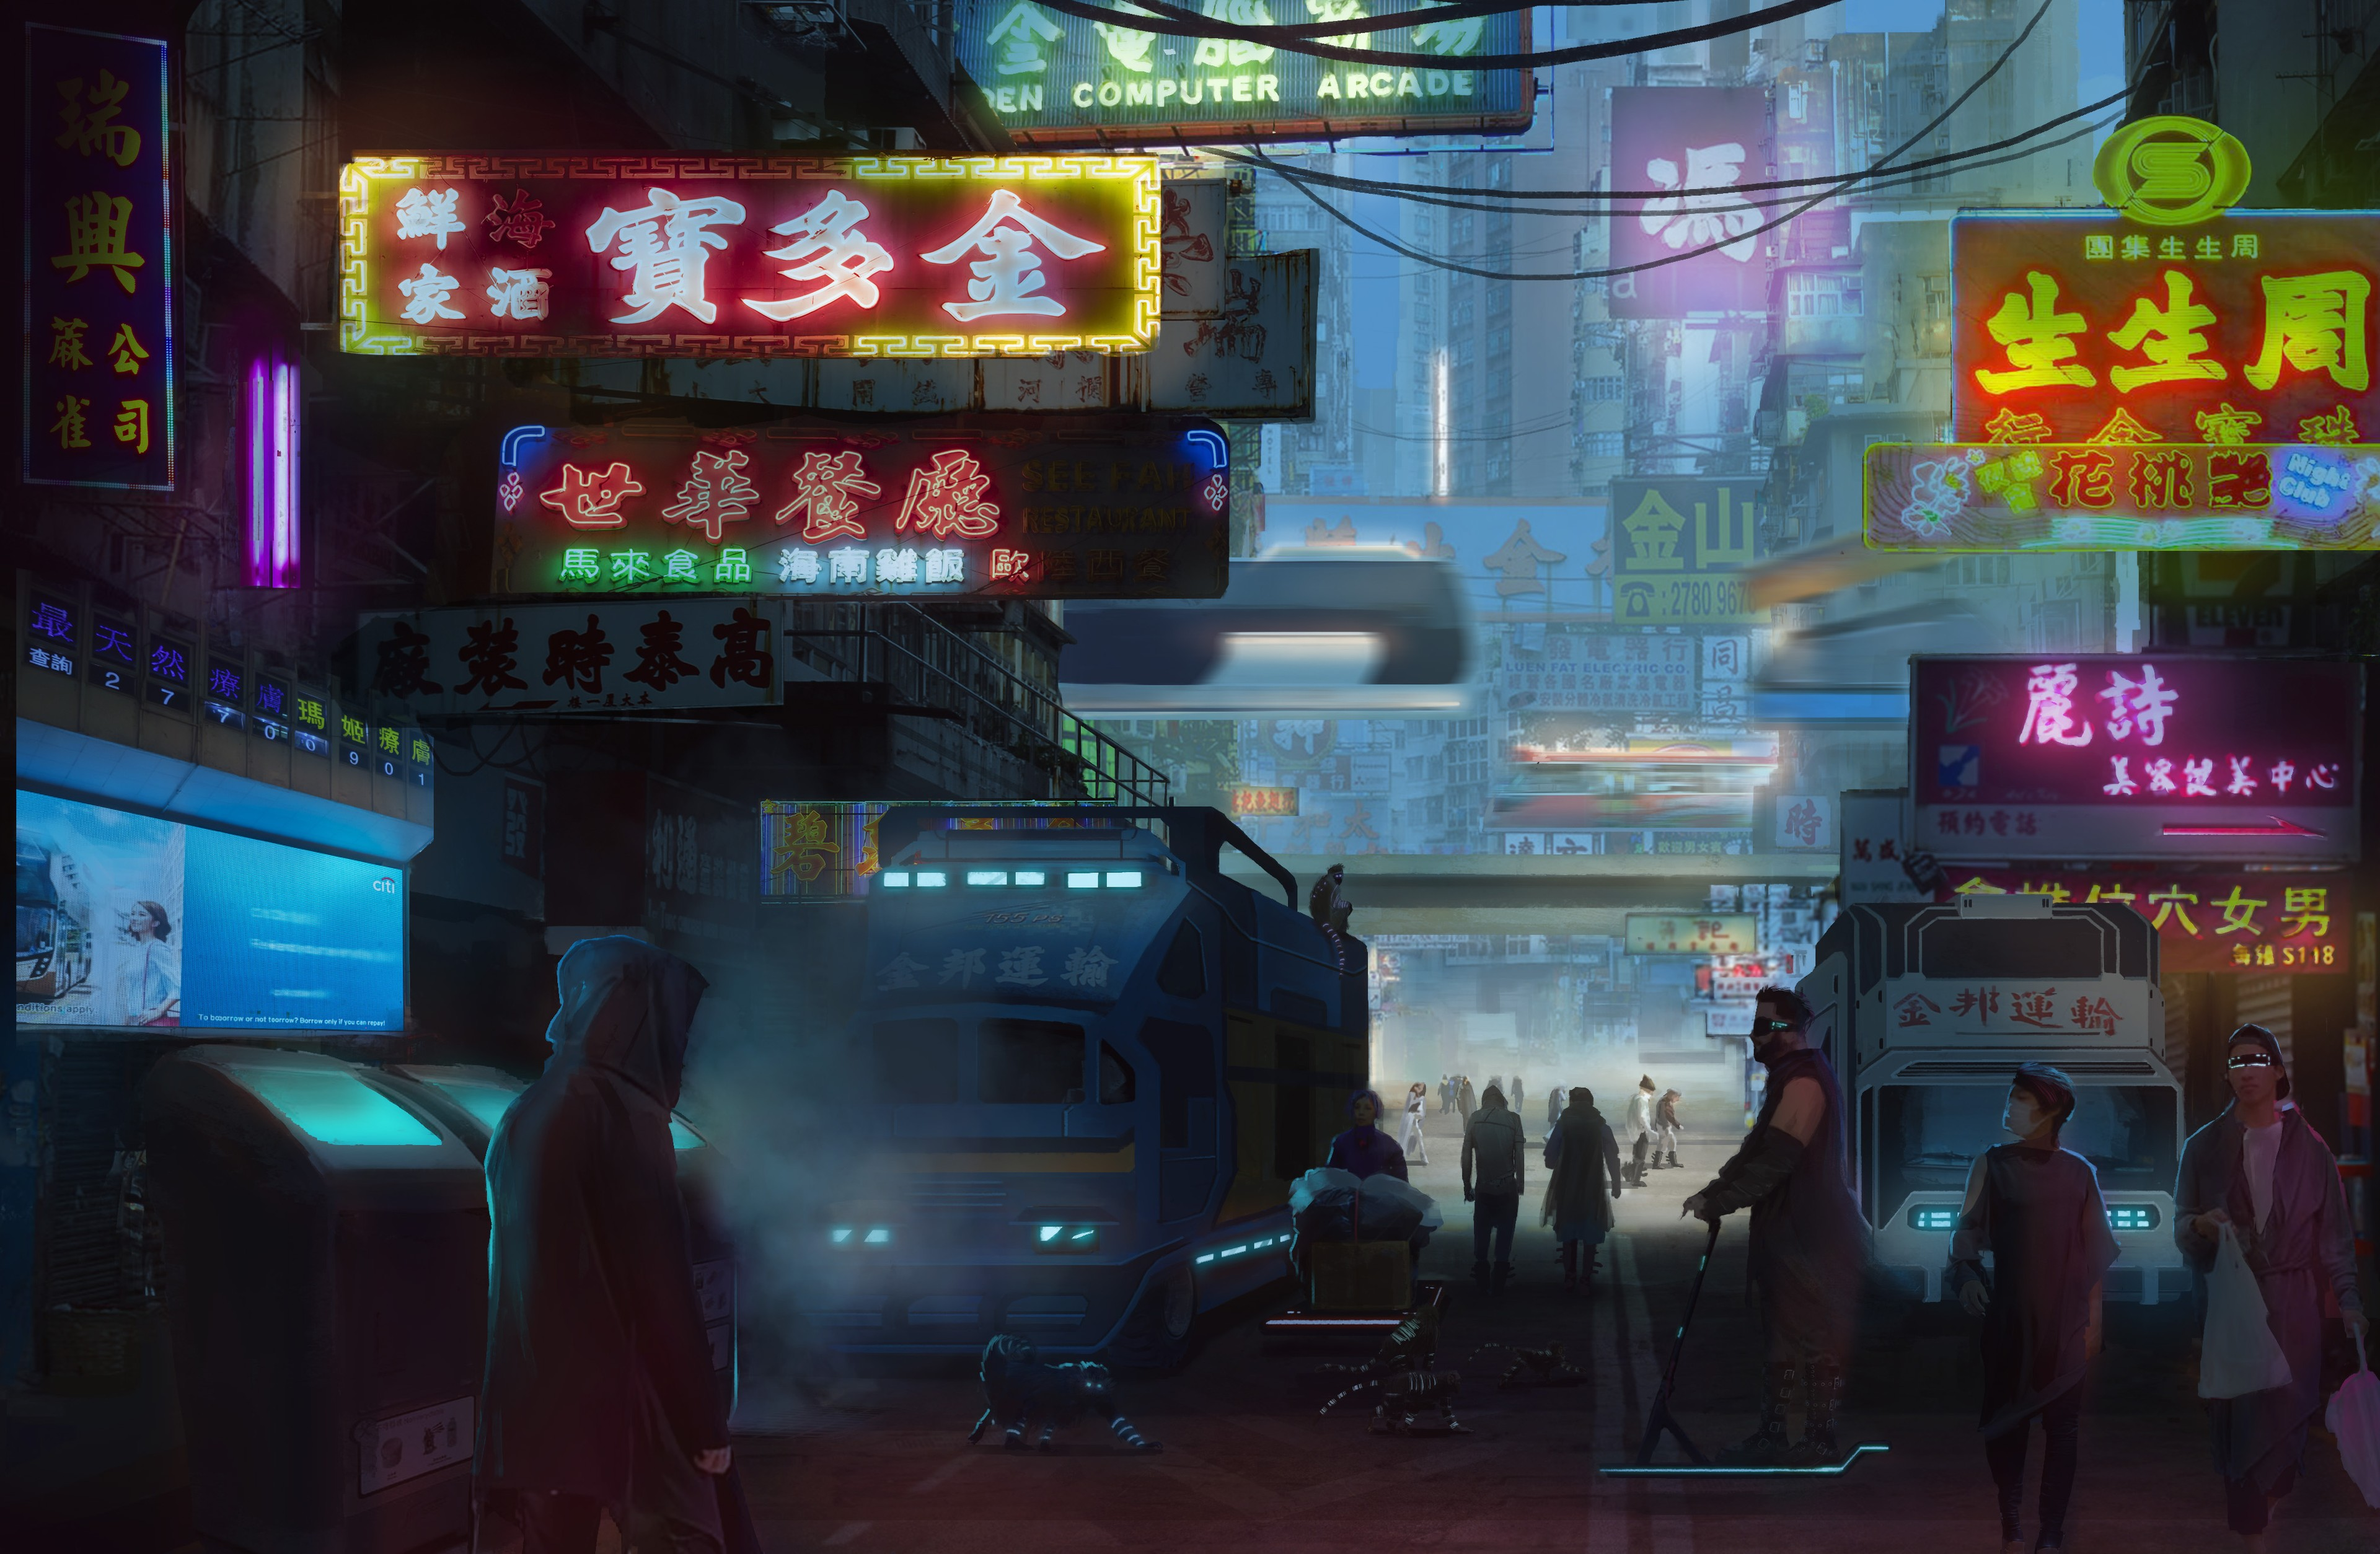 58027 download wallpaper Art, Future, China, Technologies, Technology screensavers and pictures for free